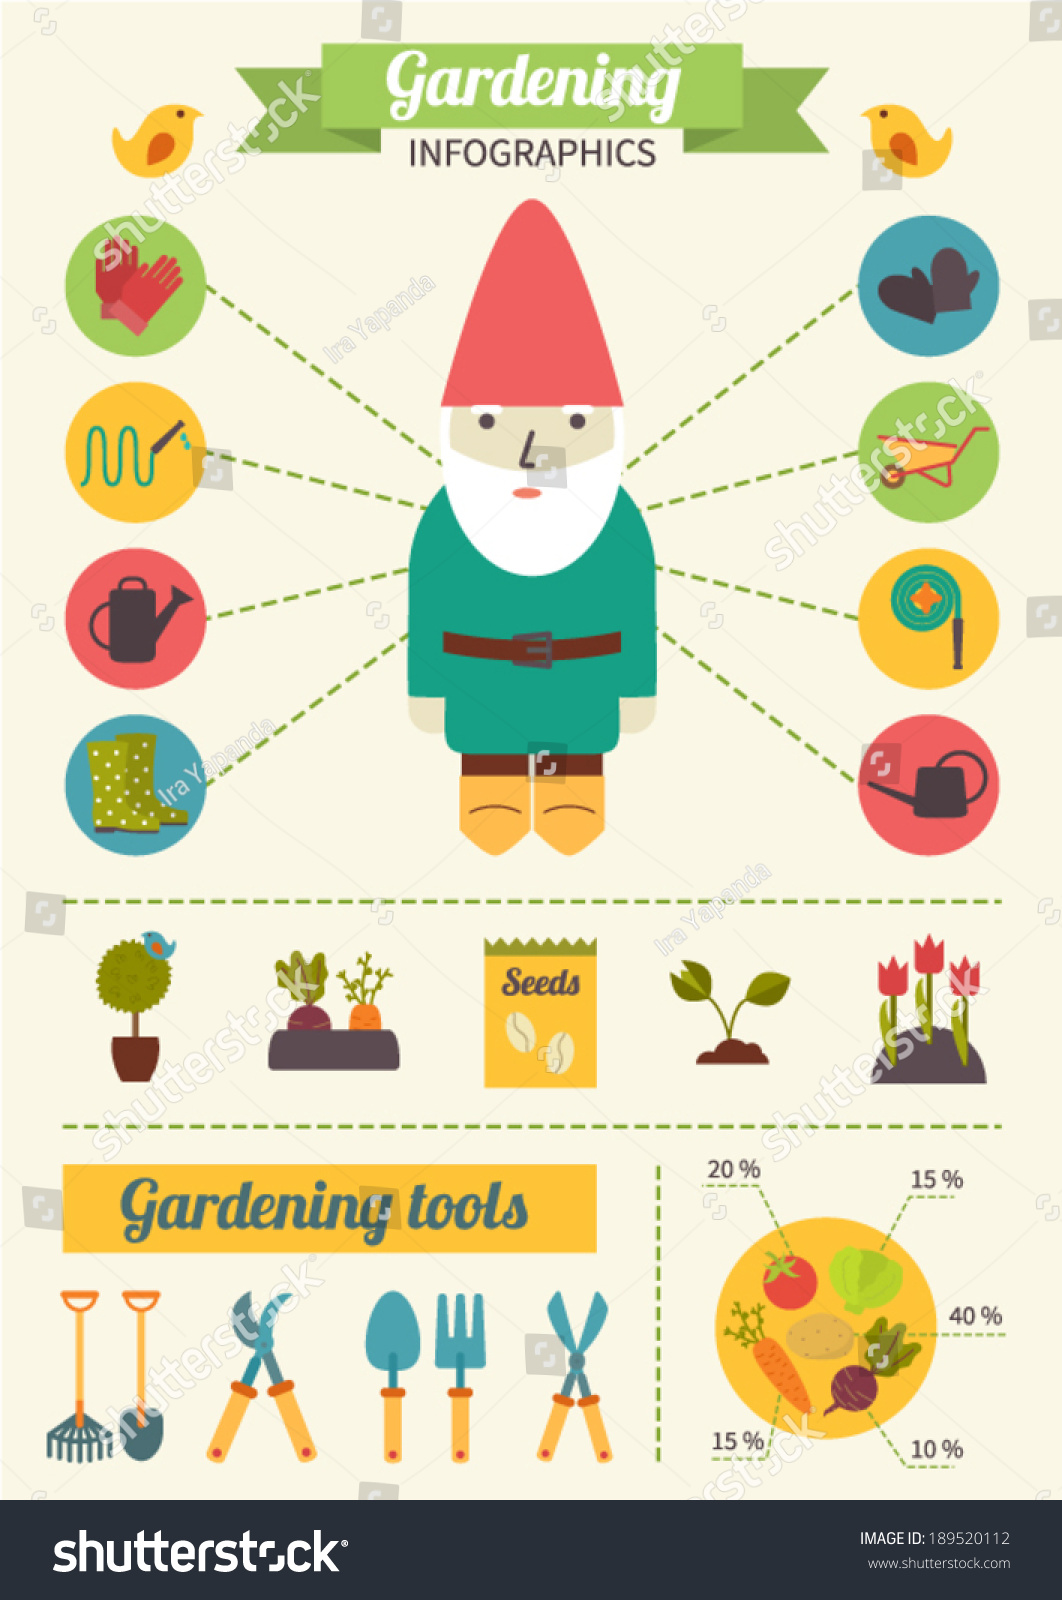 Vegetable garden graphic - Gardening Infographics Vegetable Garden Garden Tools Flat Design Vector Icons Set